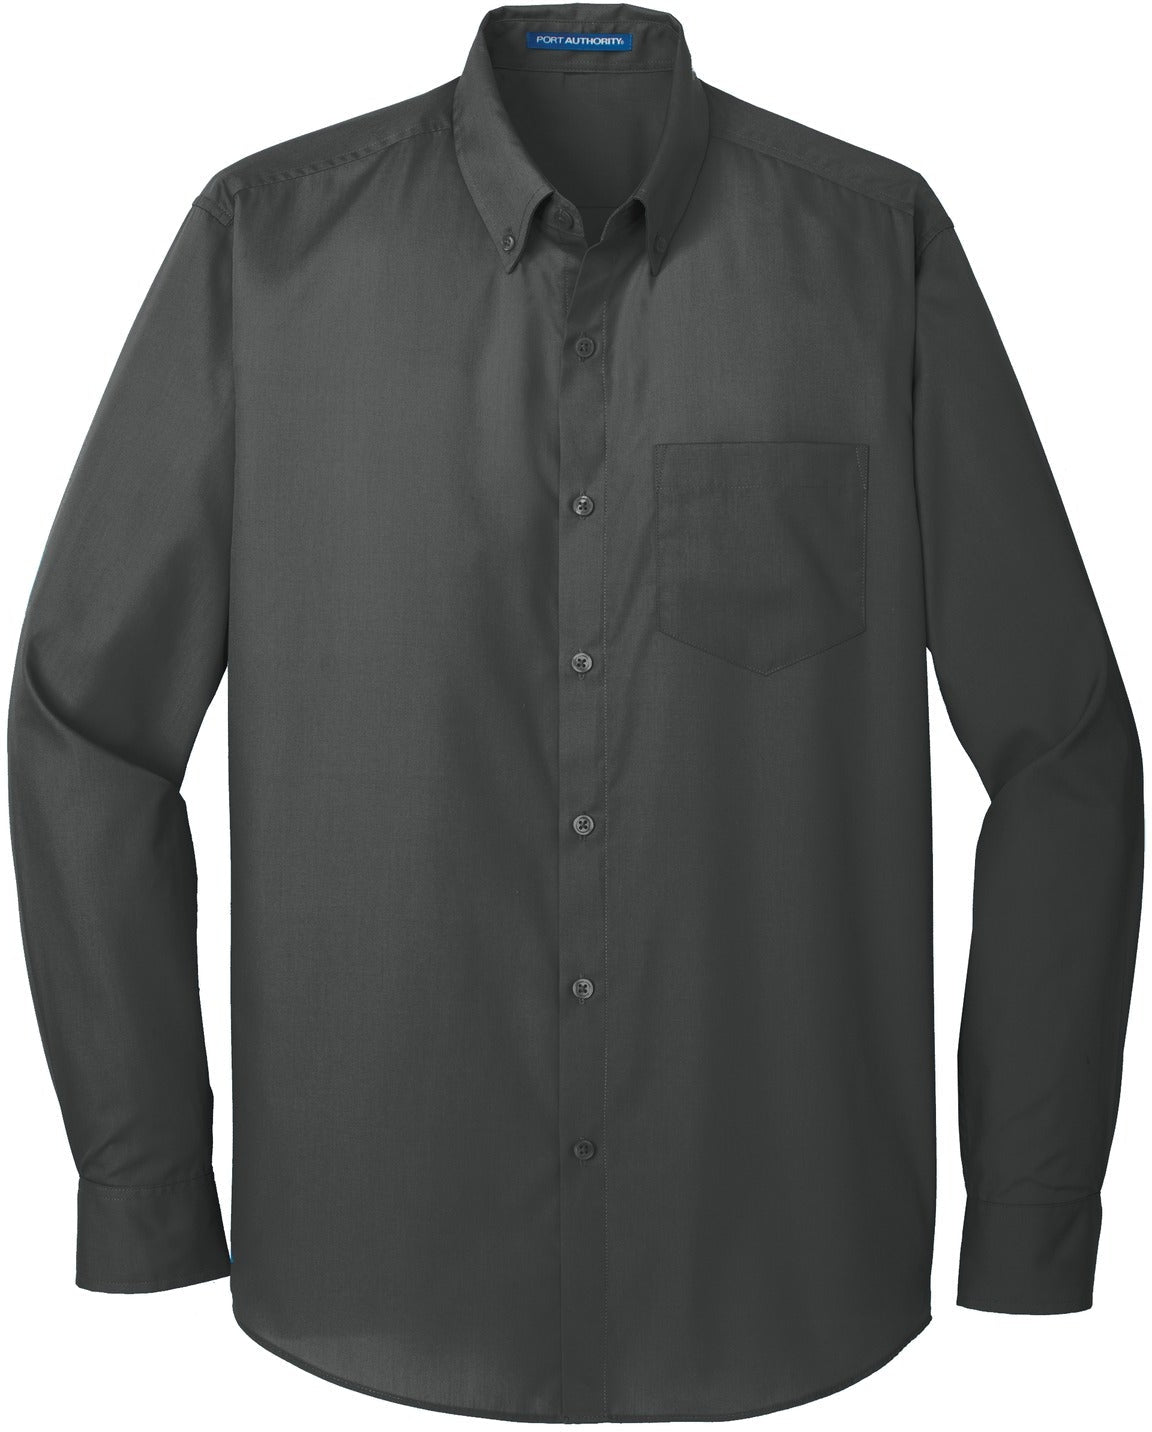 Port Authority Carefree Poplin Shirt